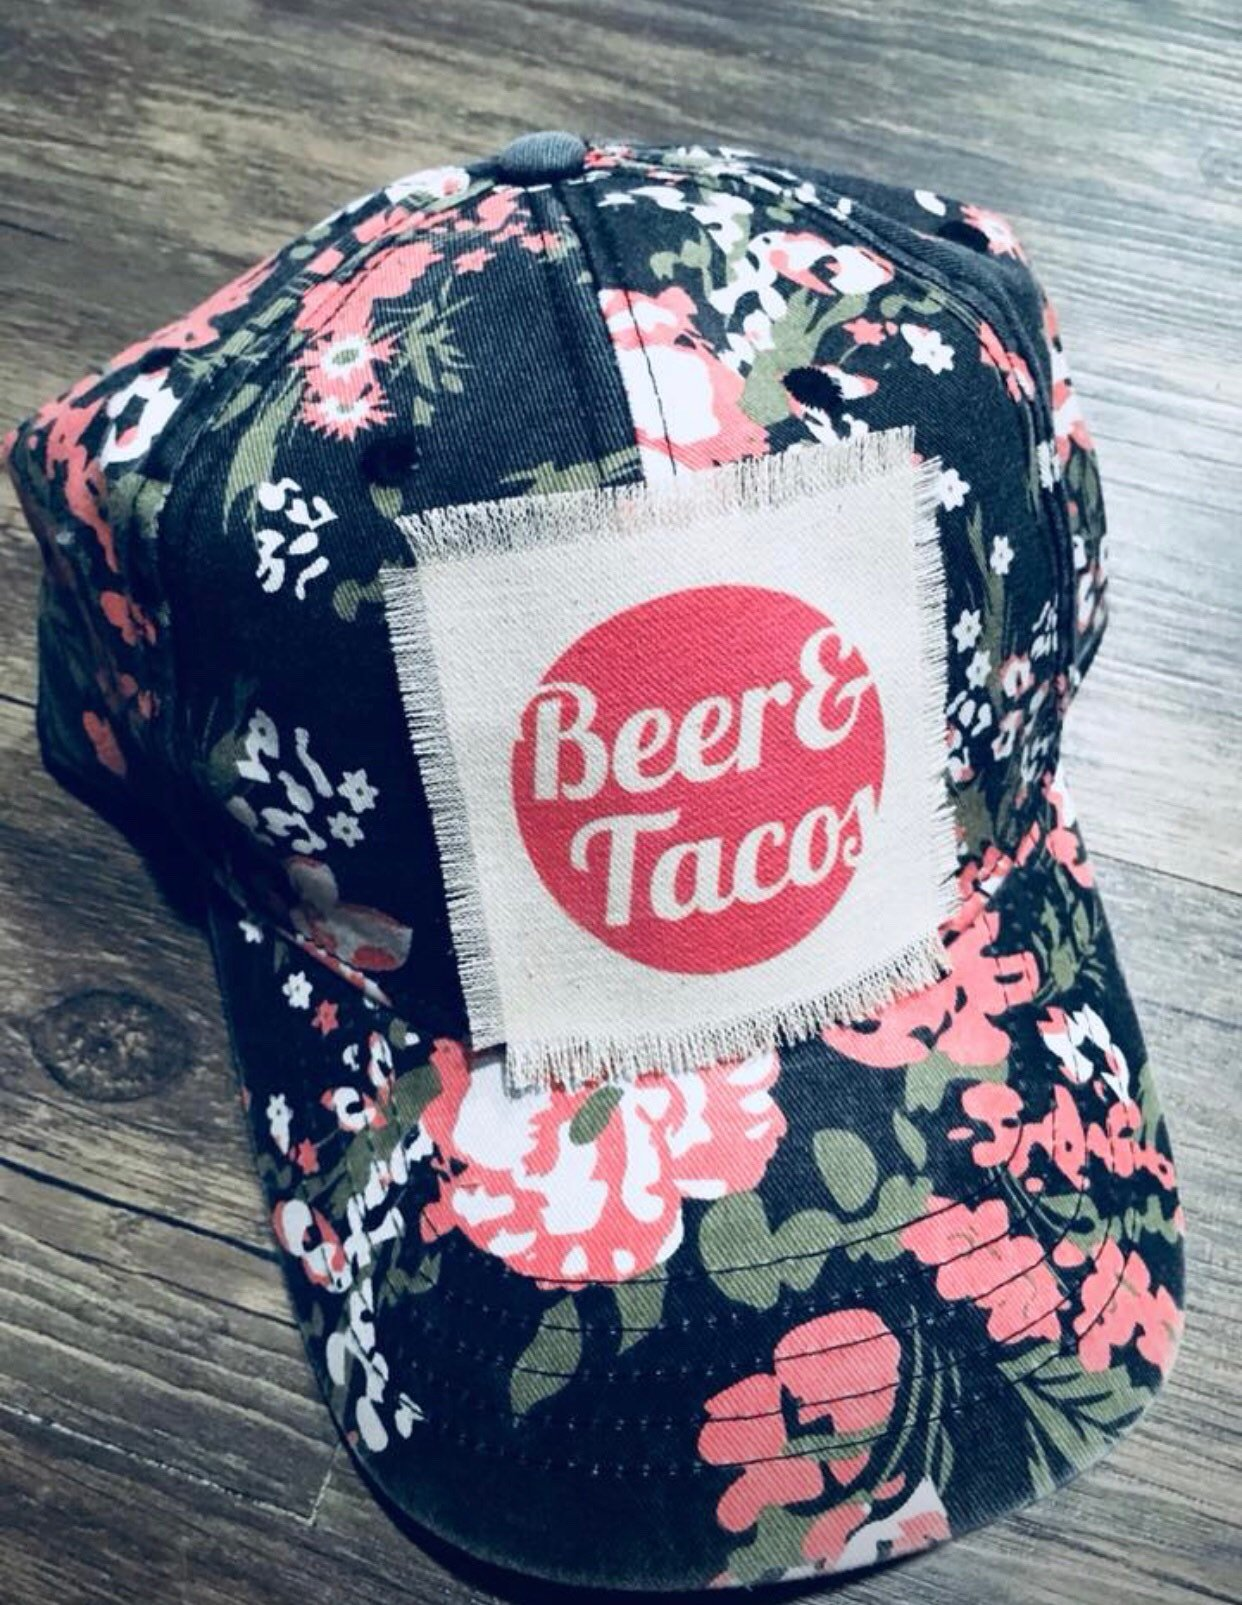 7a61a2bd1 beer and tacos,i love tacos,baseball cap for her,gift for mom,summer vacay